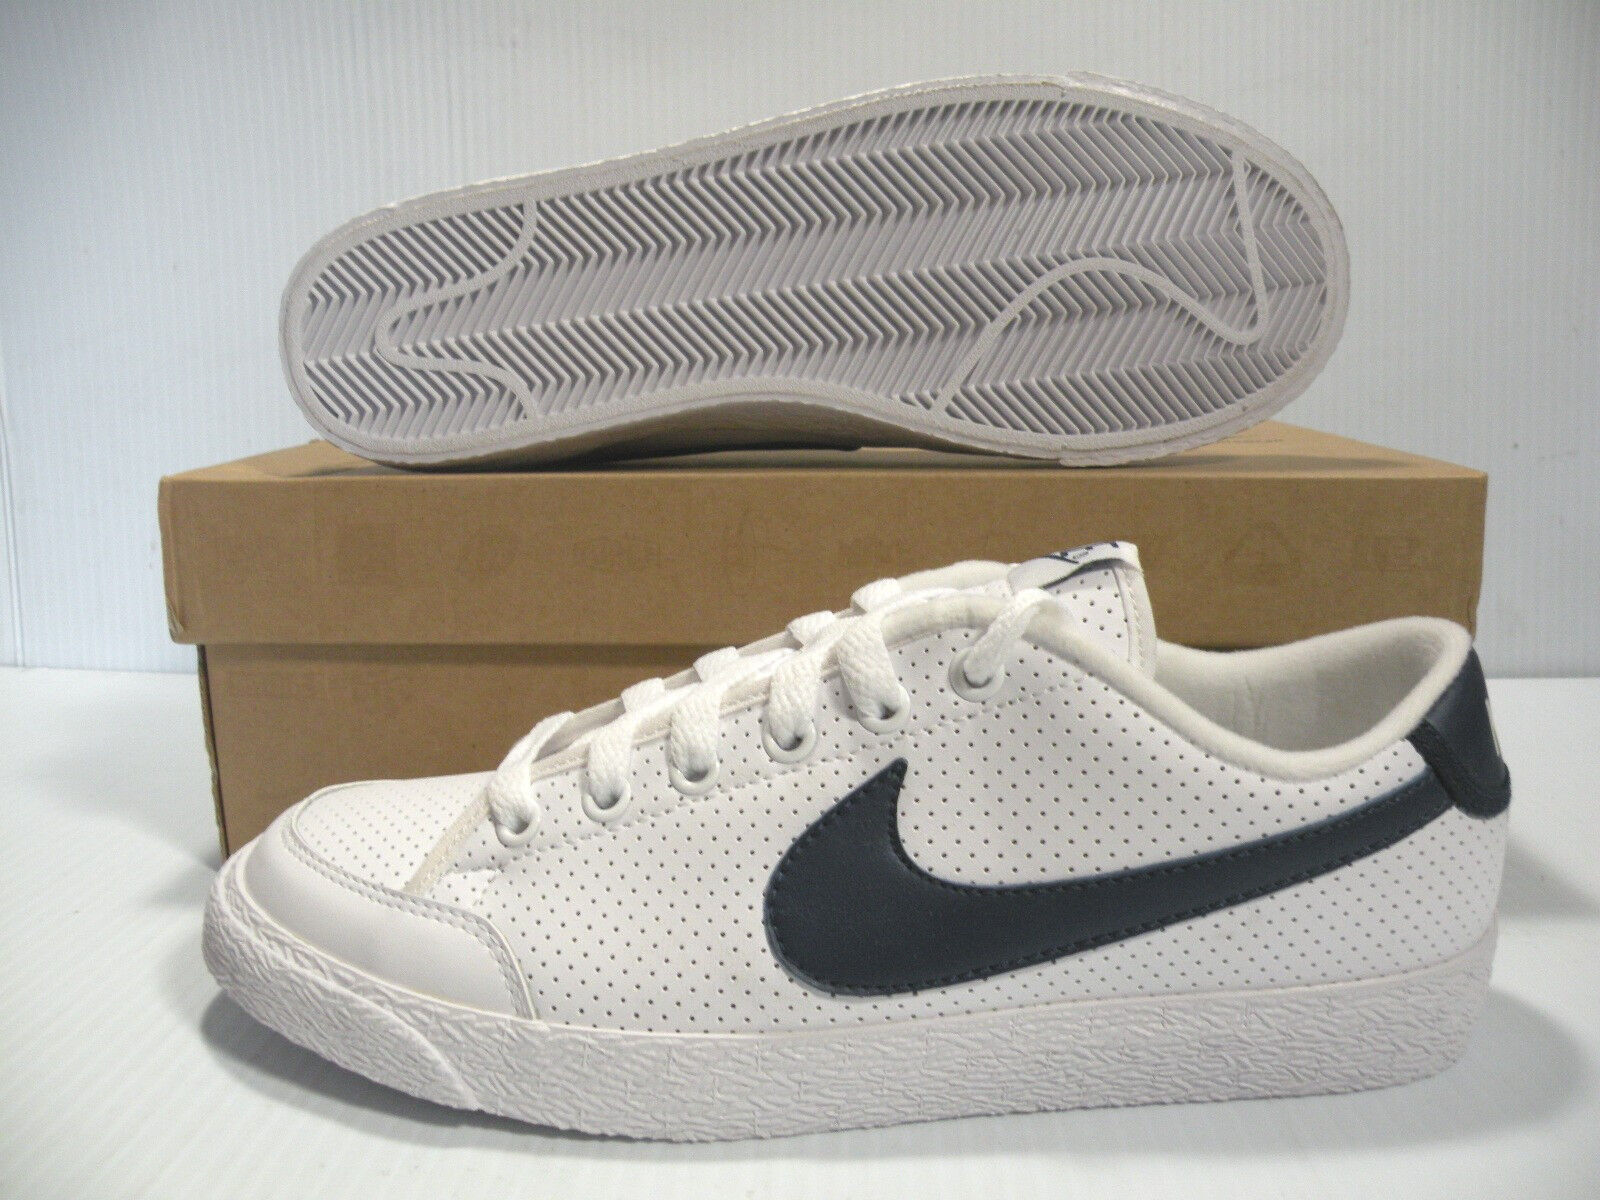 NIKE COURT LOW SNEAKERS MEN SHOES WHITE NAVY 344143-141 SIZE 7.5 NEW